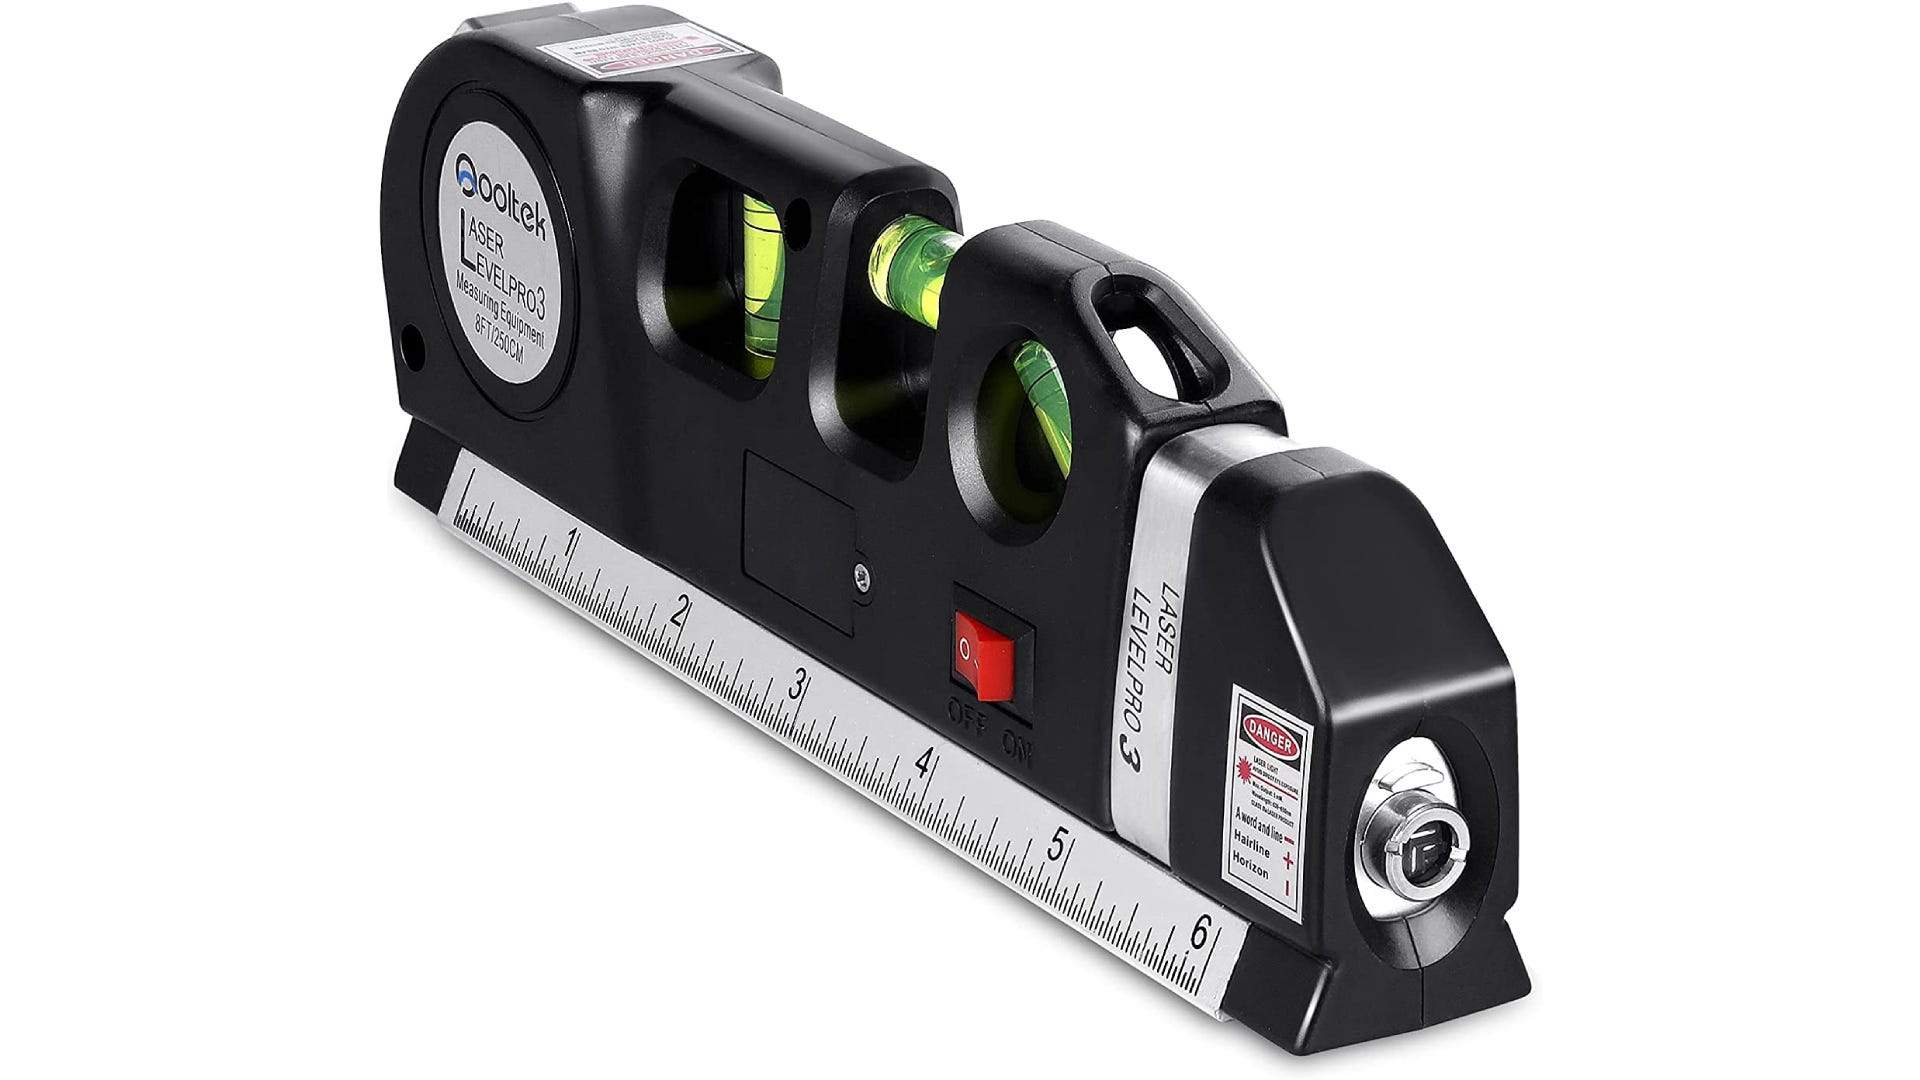 A black torpedo level with three bubble vials, tape measurer, and laser.